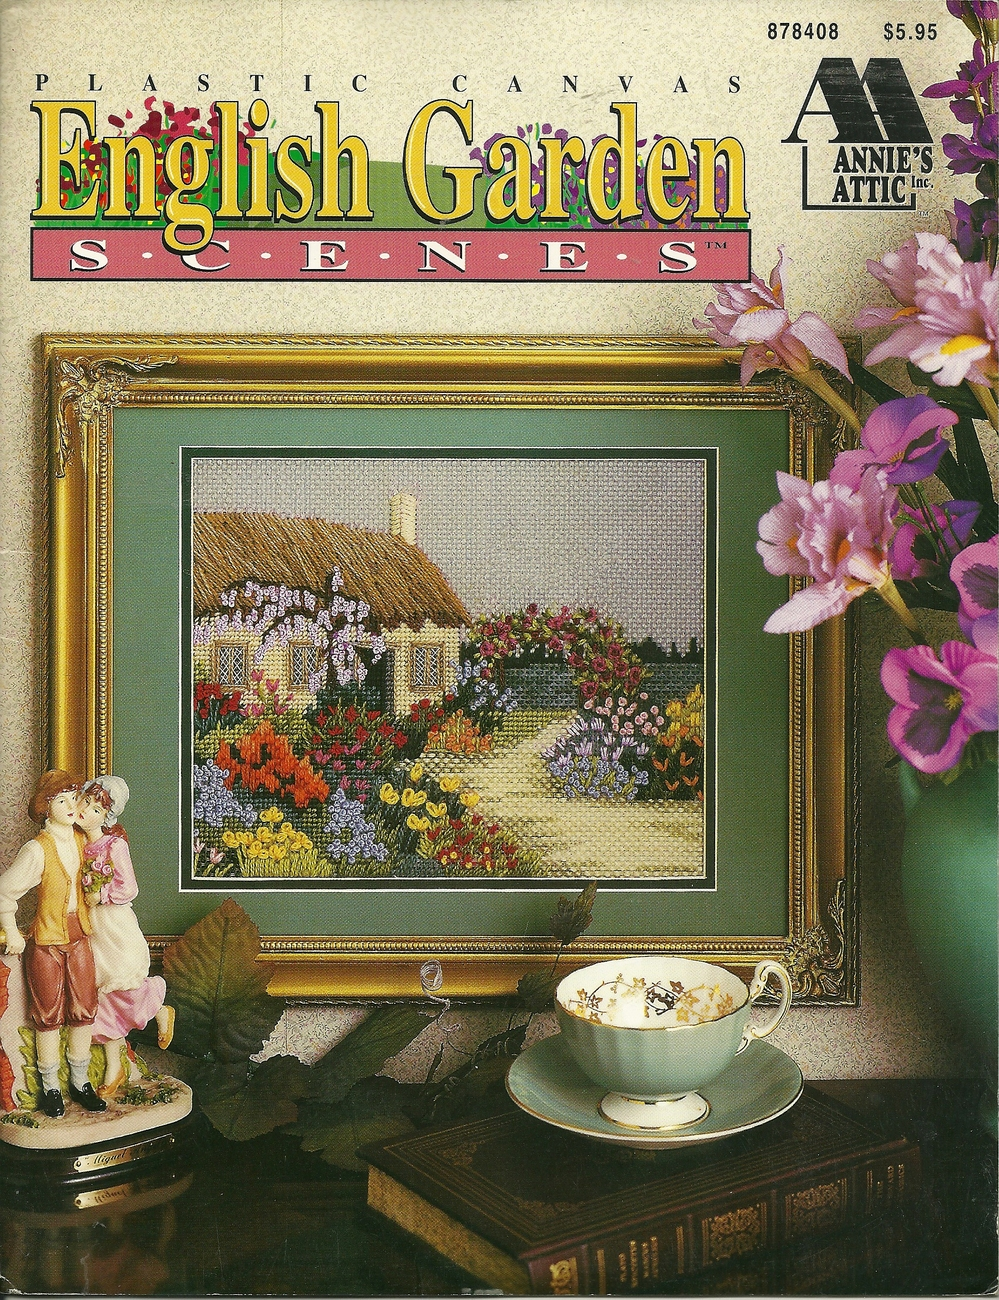 Plastic Canvas ~ English Garden Scenes ~ Annie's Attic 1995